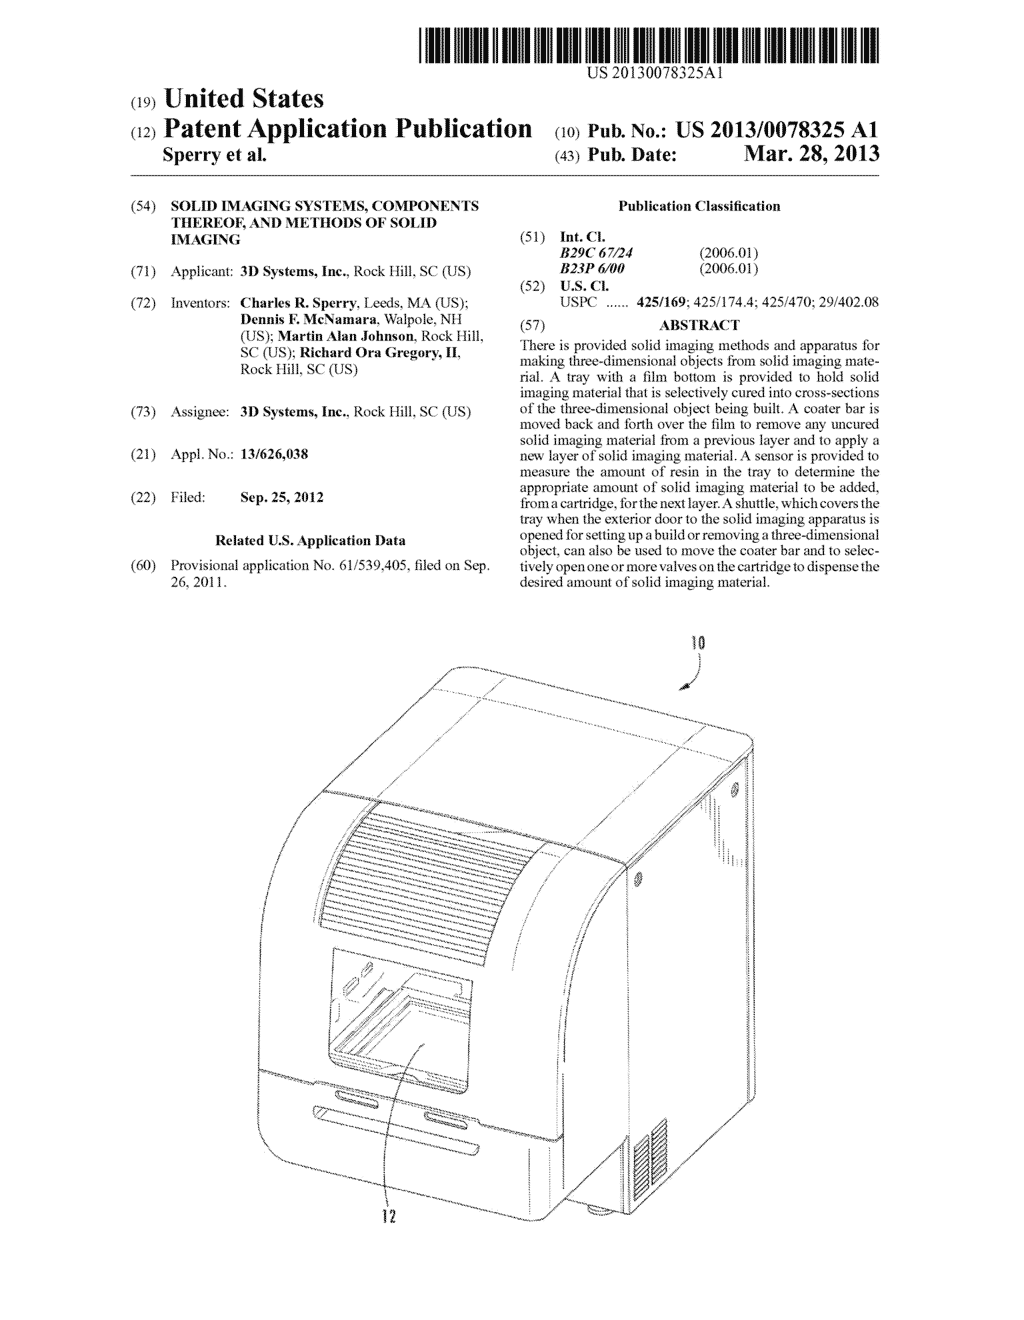 Solid Imaging Systems, Components Thereof, and Methods of Solid Imaging - diagram, schematic, and image 01